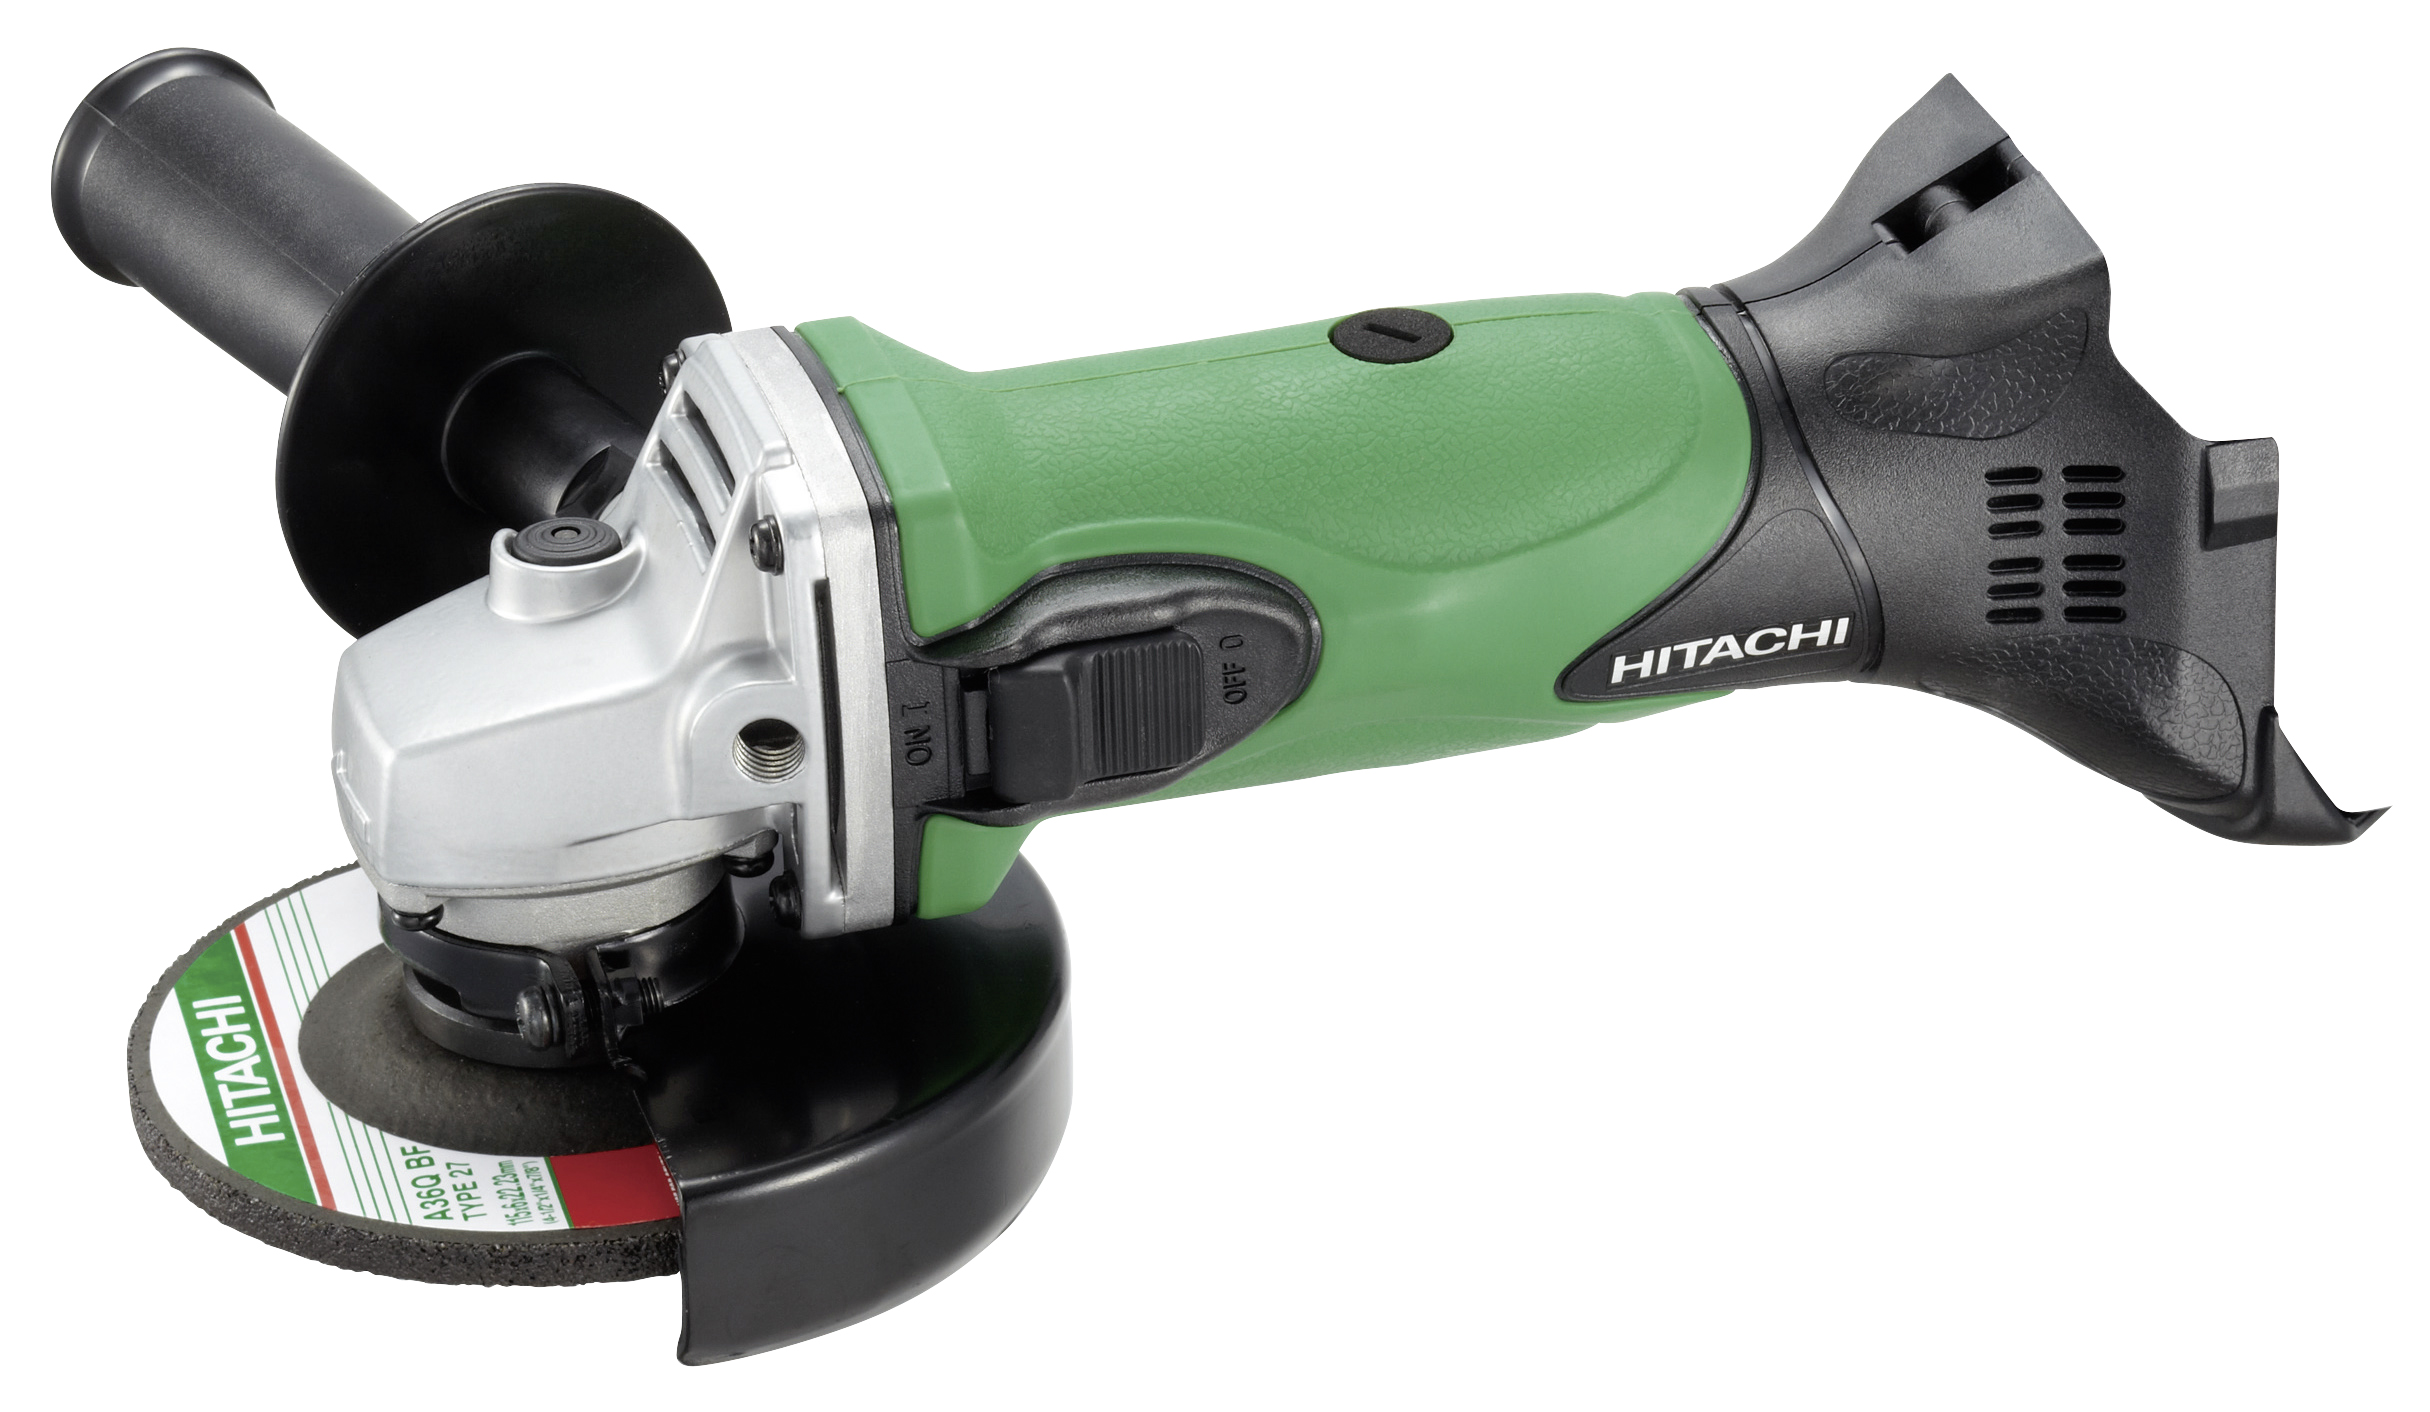 G14DSLW4-14v-mini-grinder-without-battery-or-charger